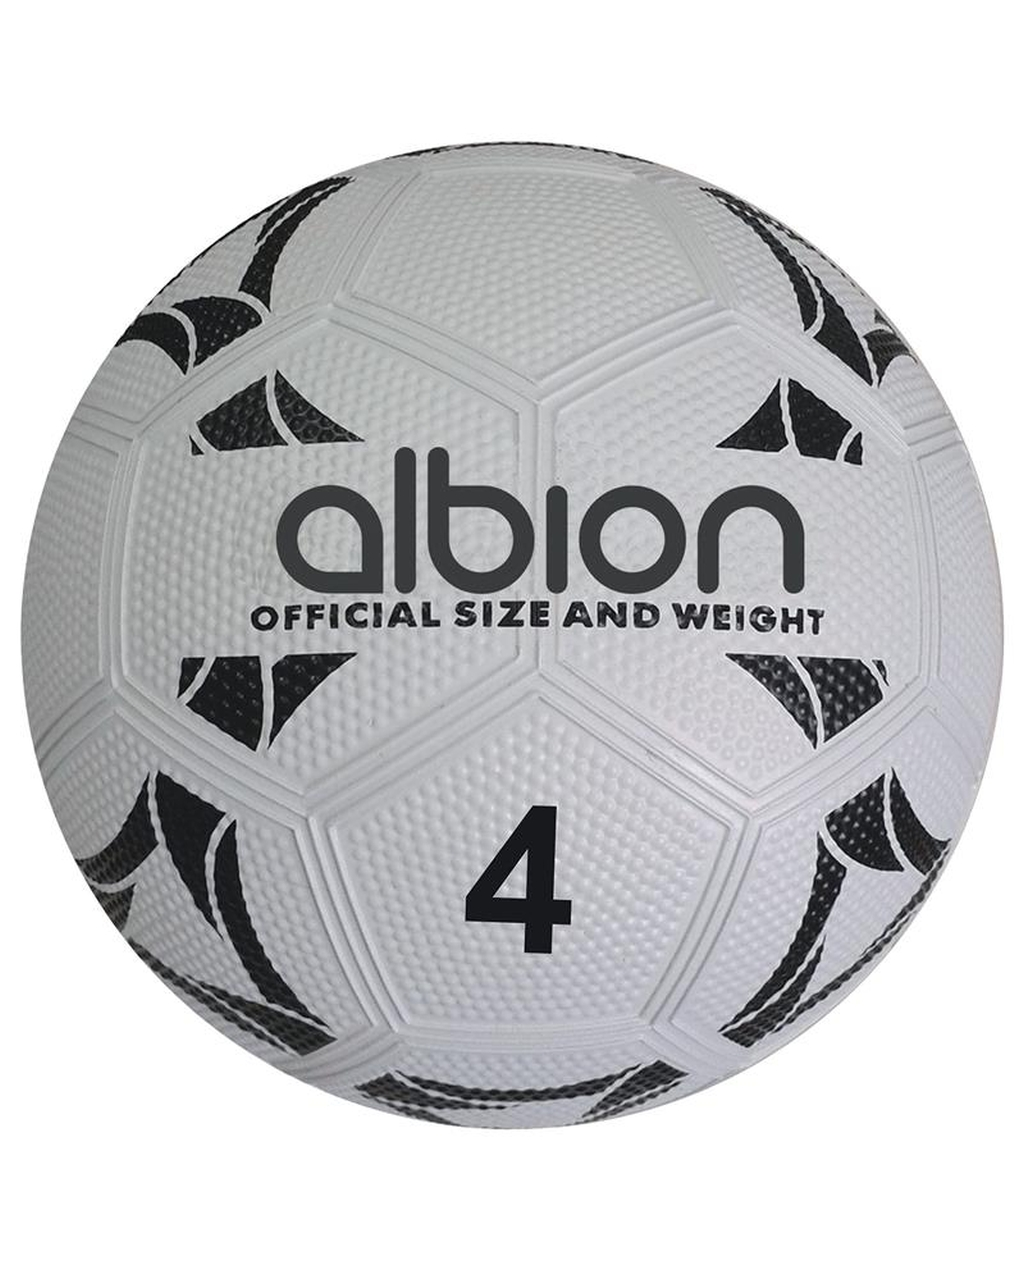 Nylon Wound Football Size 4